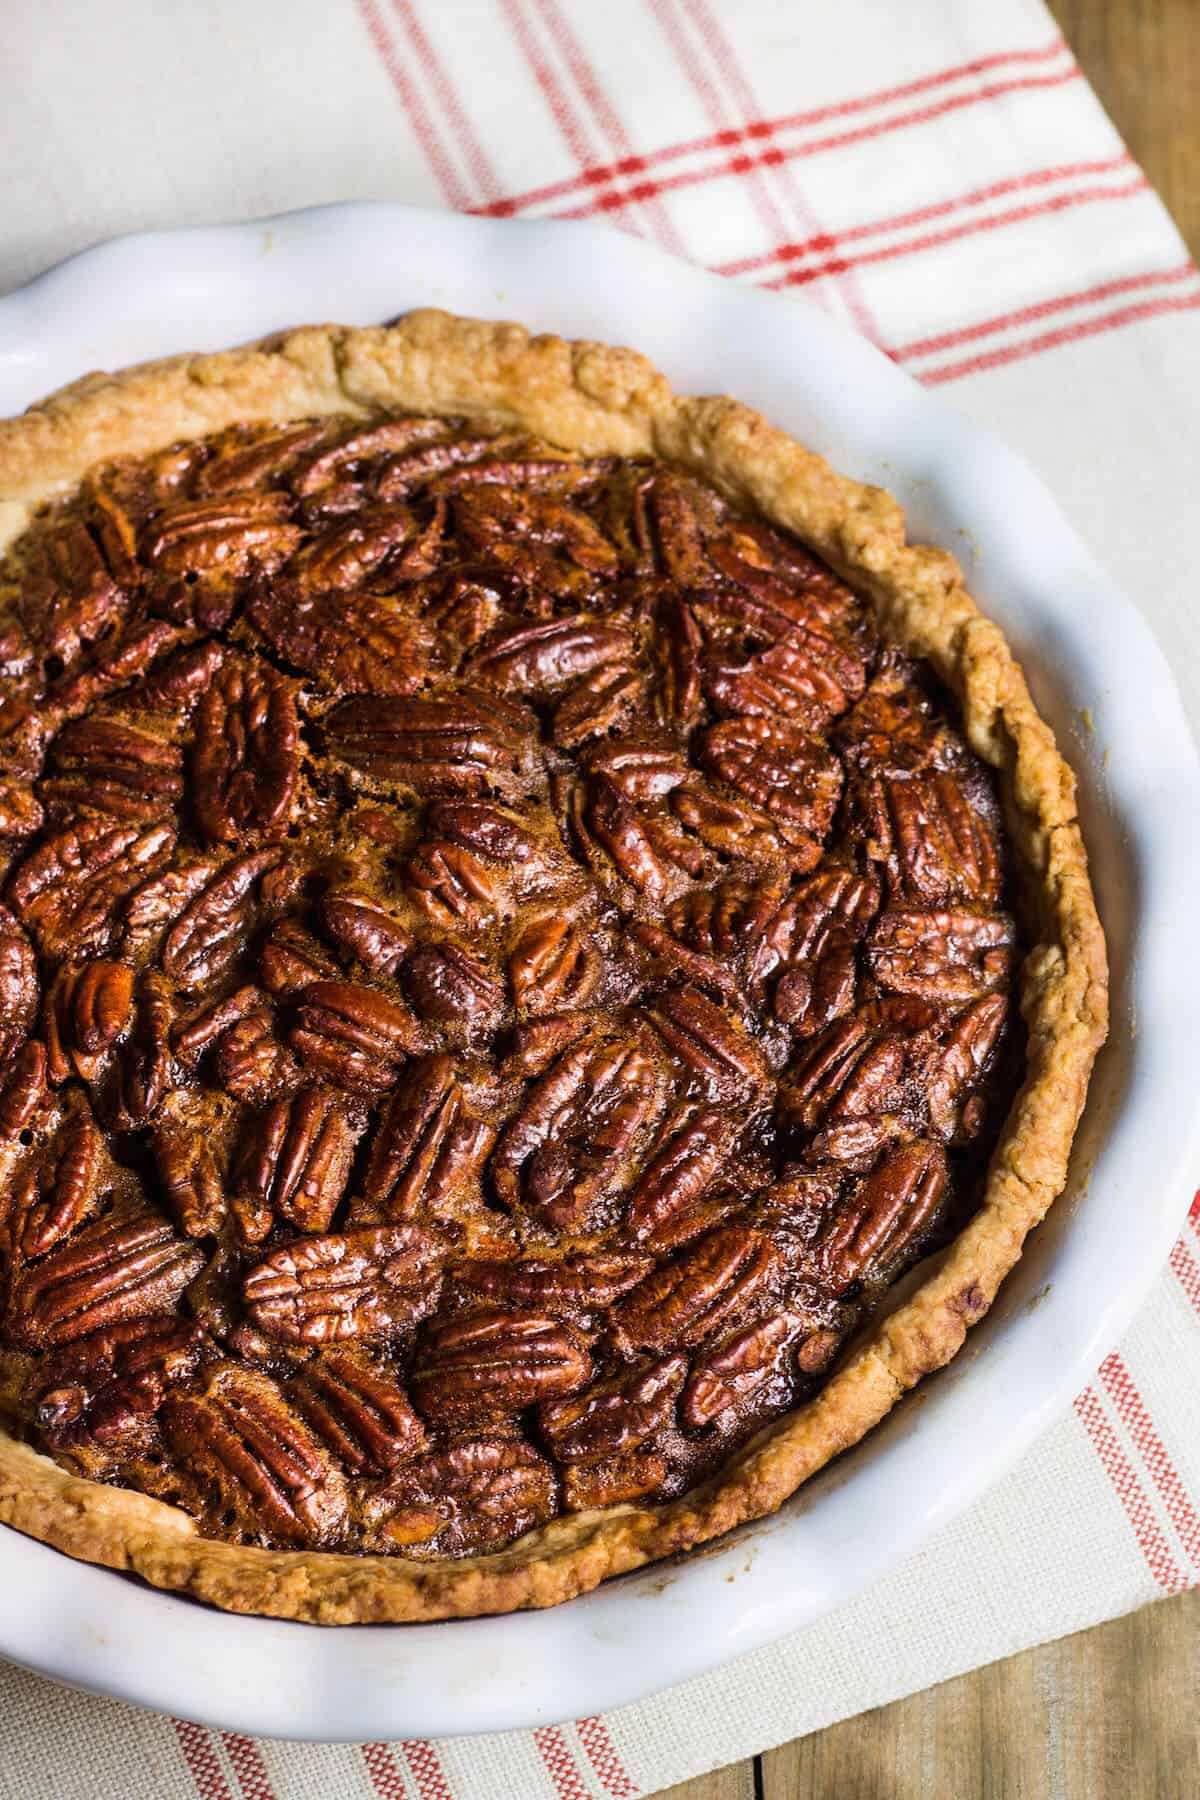 Pecan Pie - Made with an extra gooey filling and No corn syrup! Recipe via MonPetitFour.com